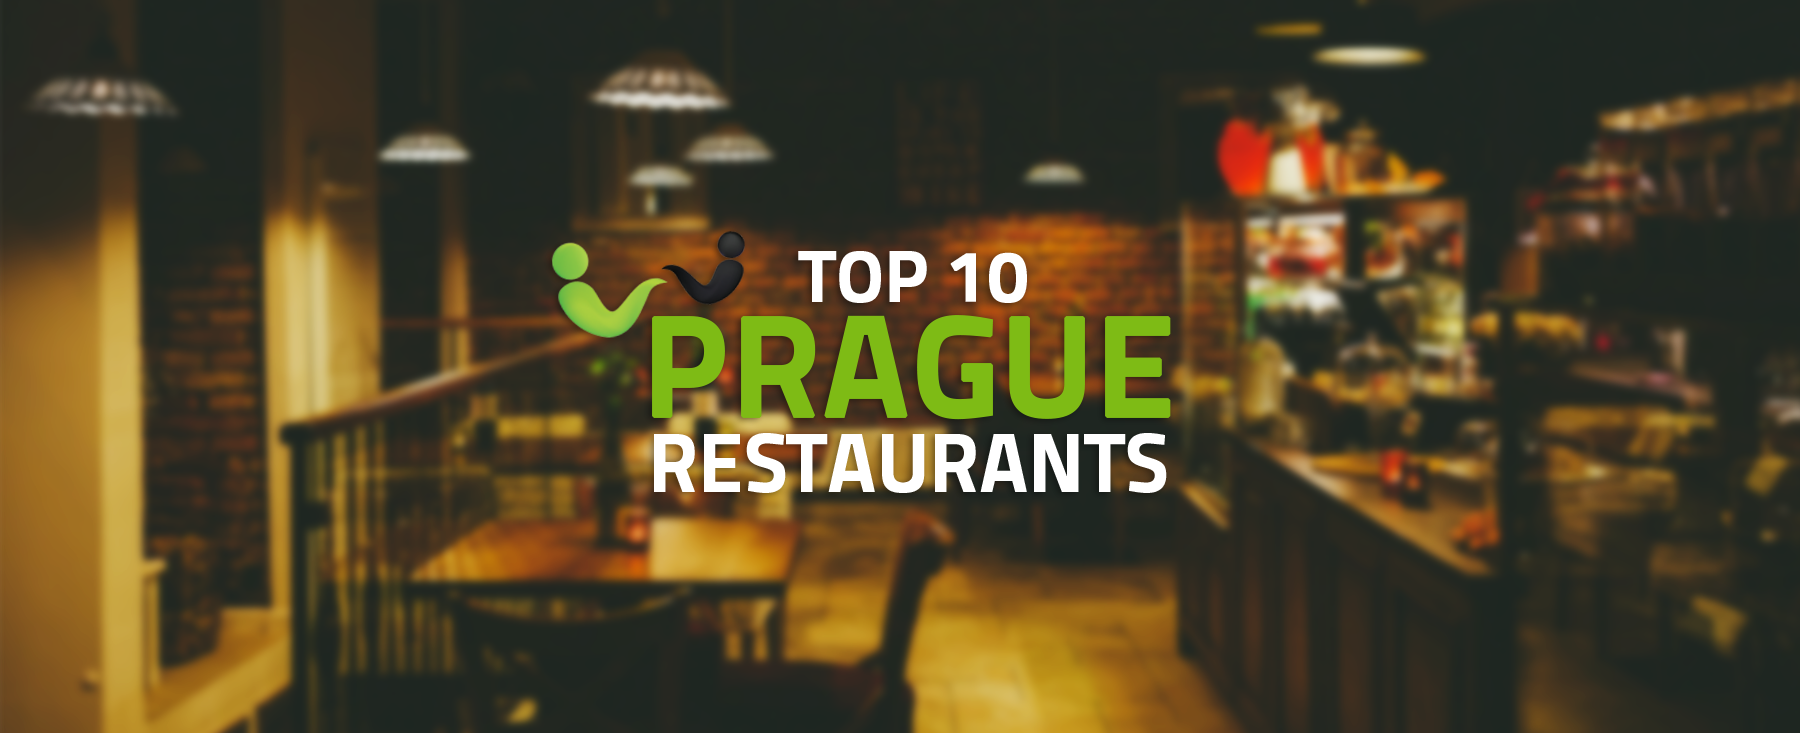 Top 10 Prague Restaurants Foreignerscz Blog